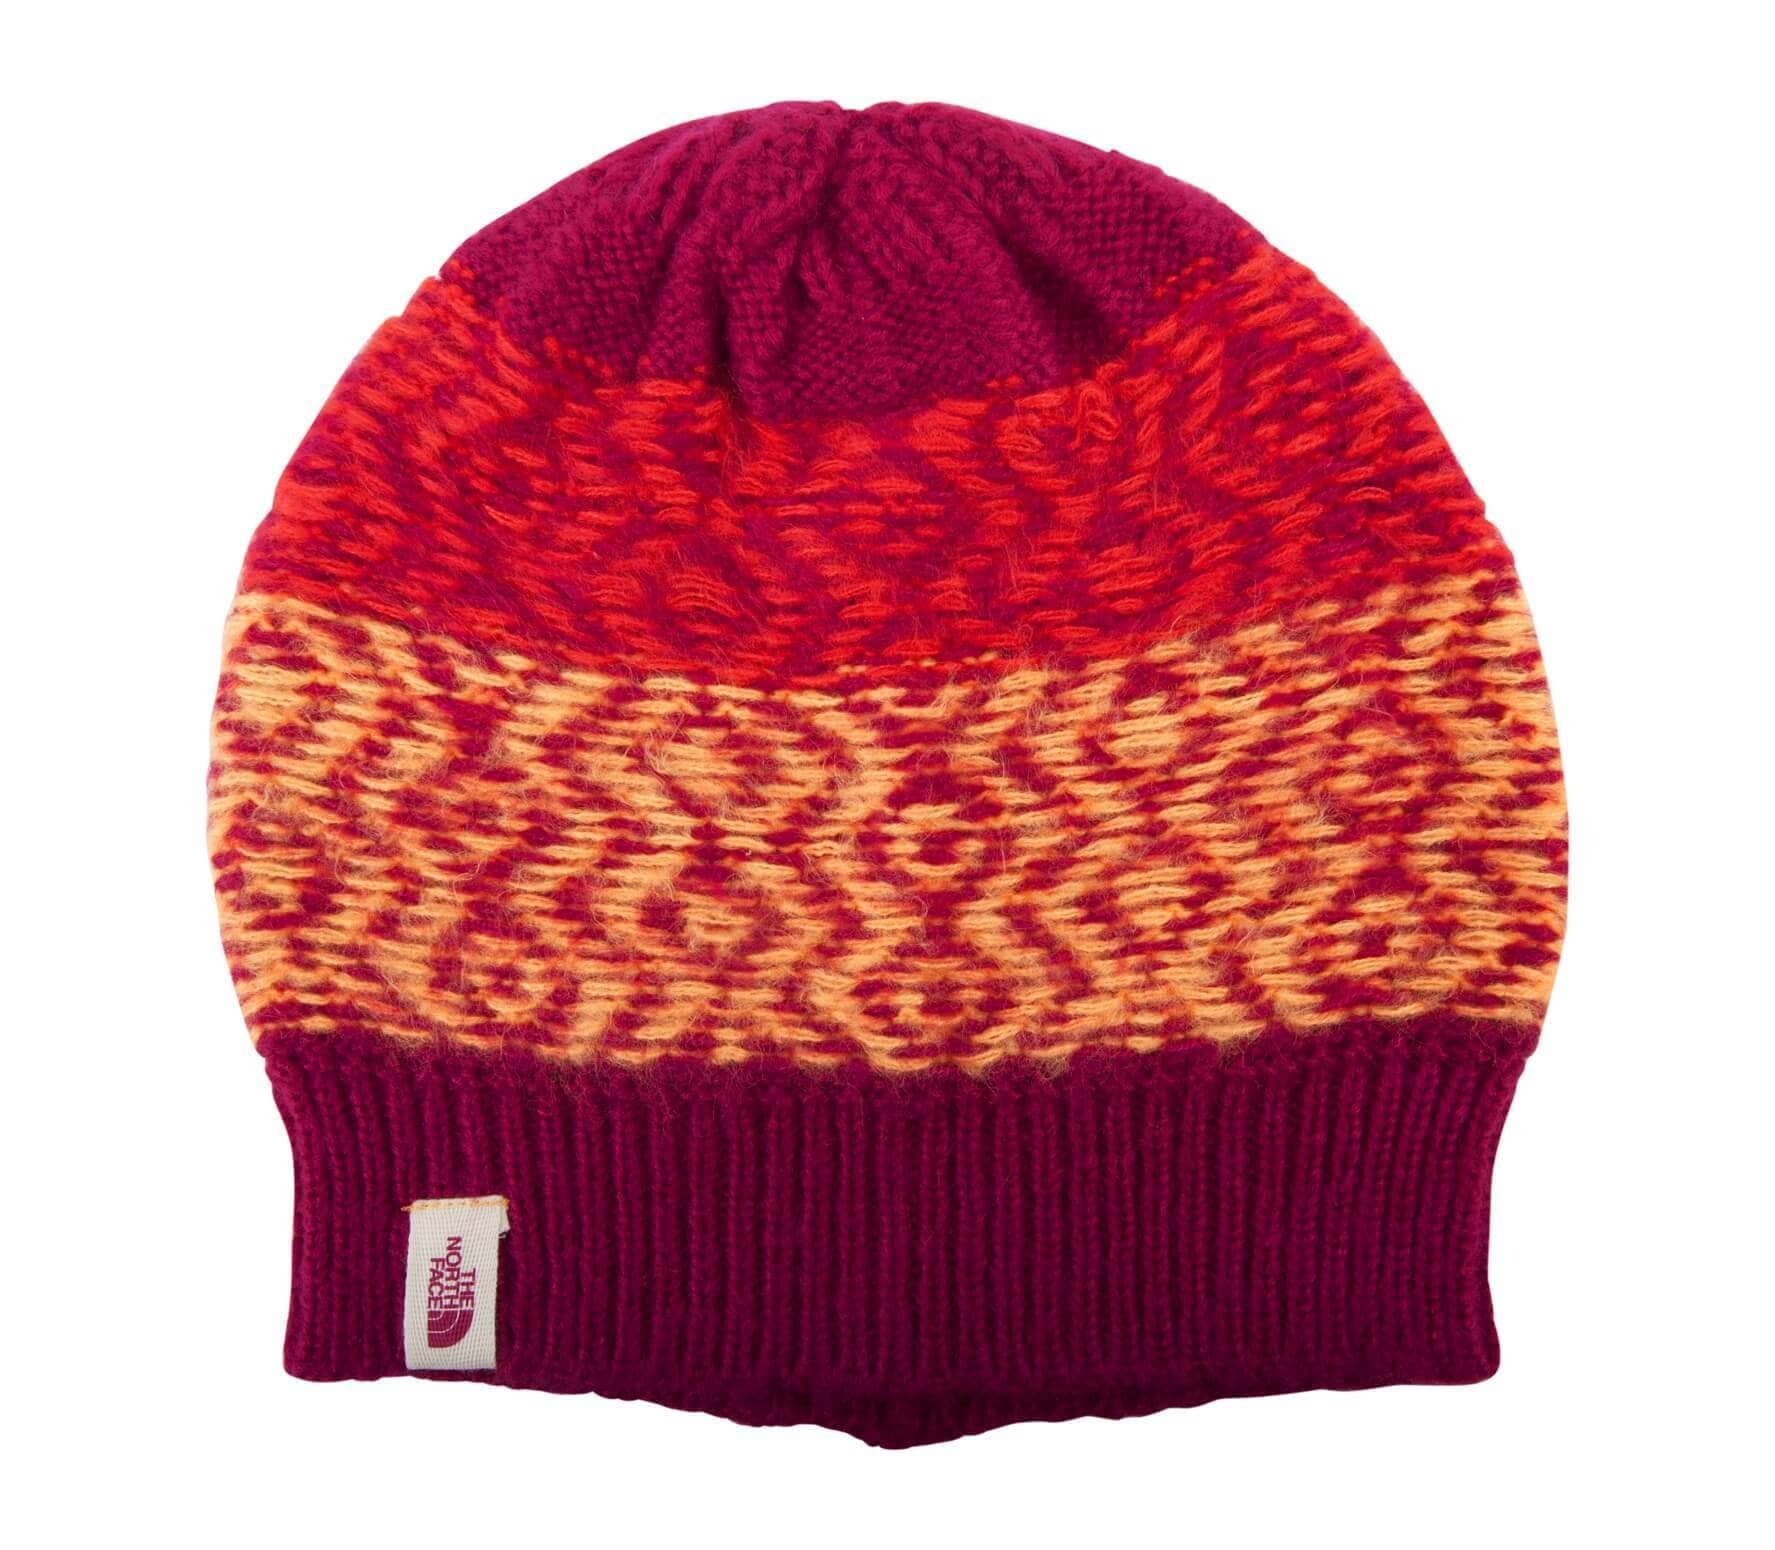 4a57bfec499 The North Face - Tribe N True beanie (purple red) - buy it at the ...